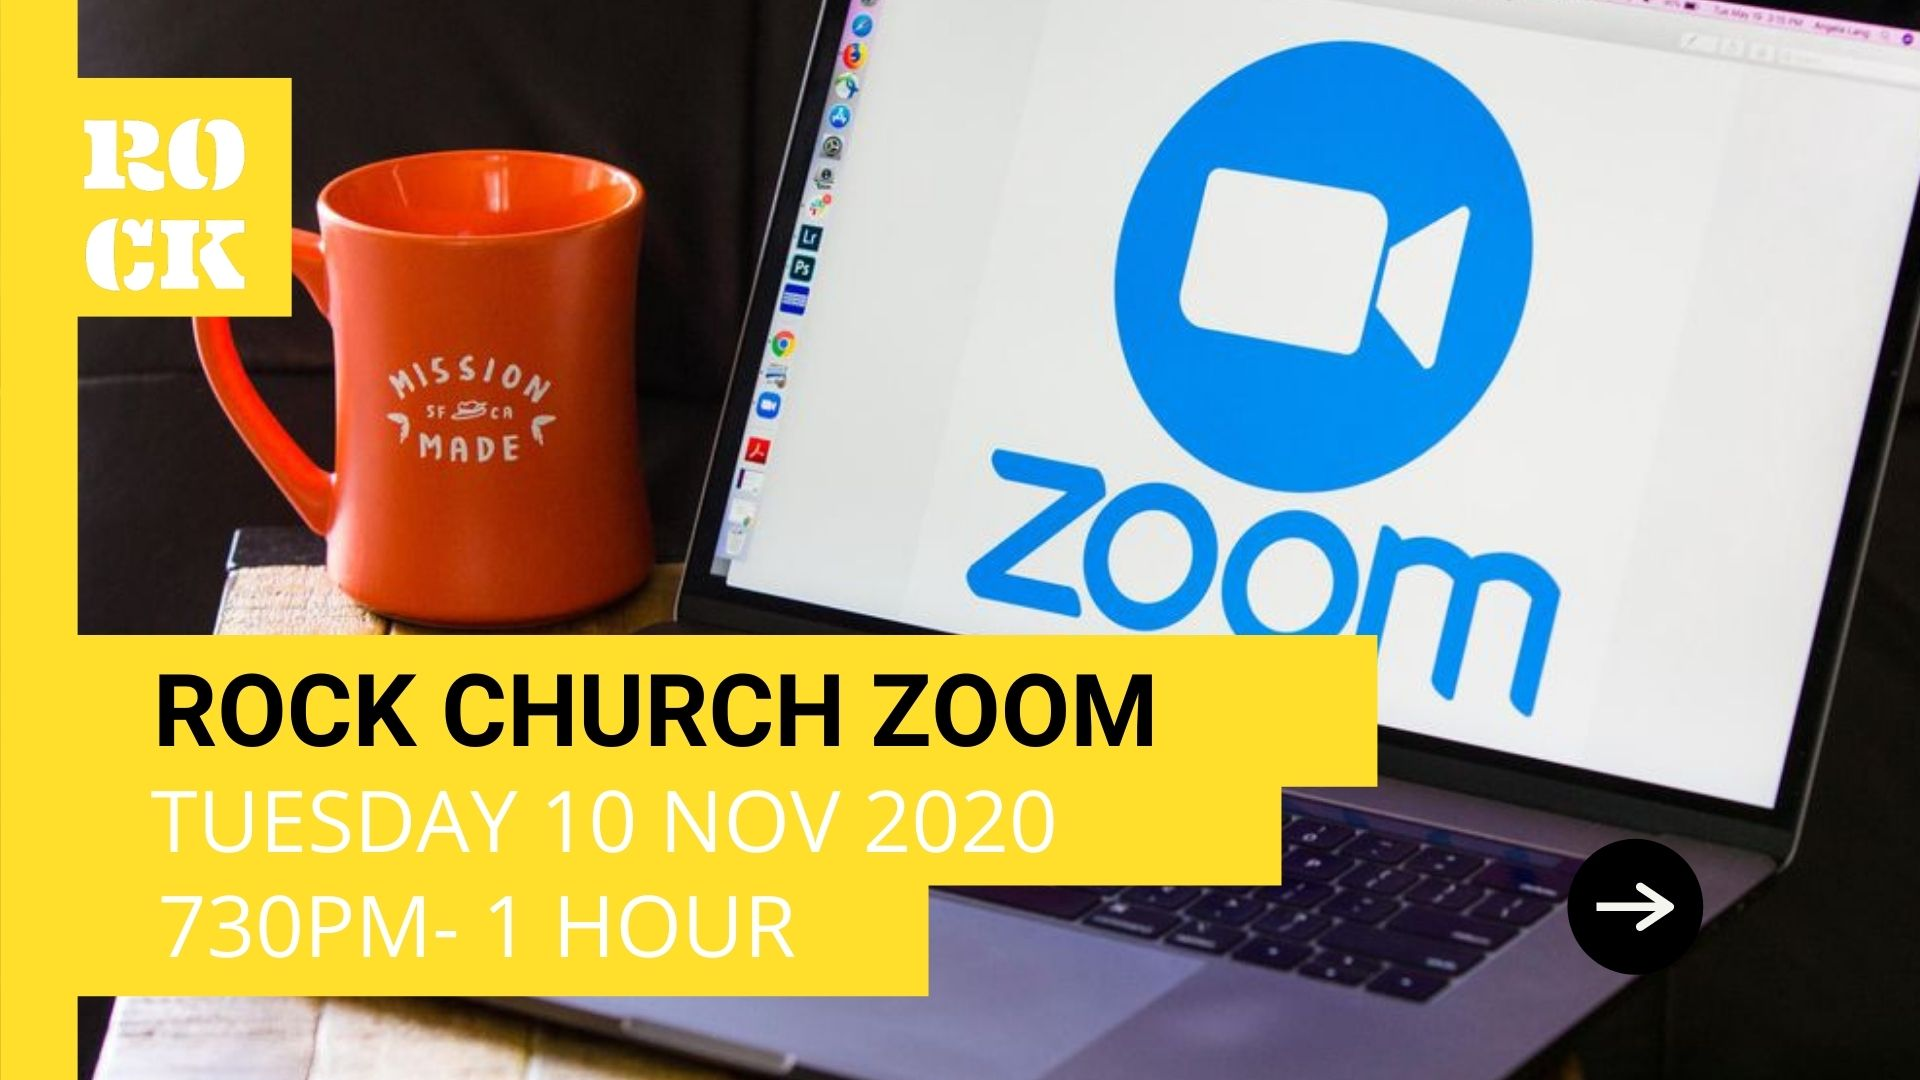 Rock Church - Zoom Meeting - 7:30pm Tuesday 19th November 2020